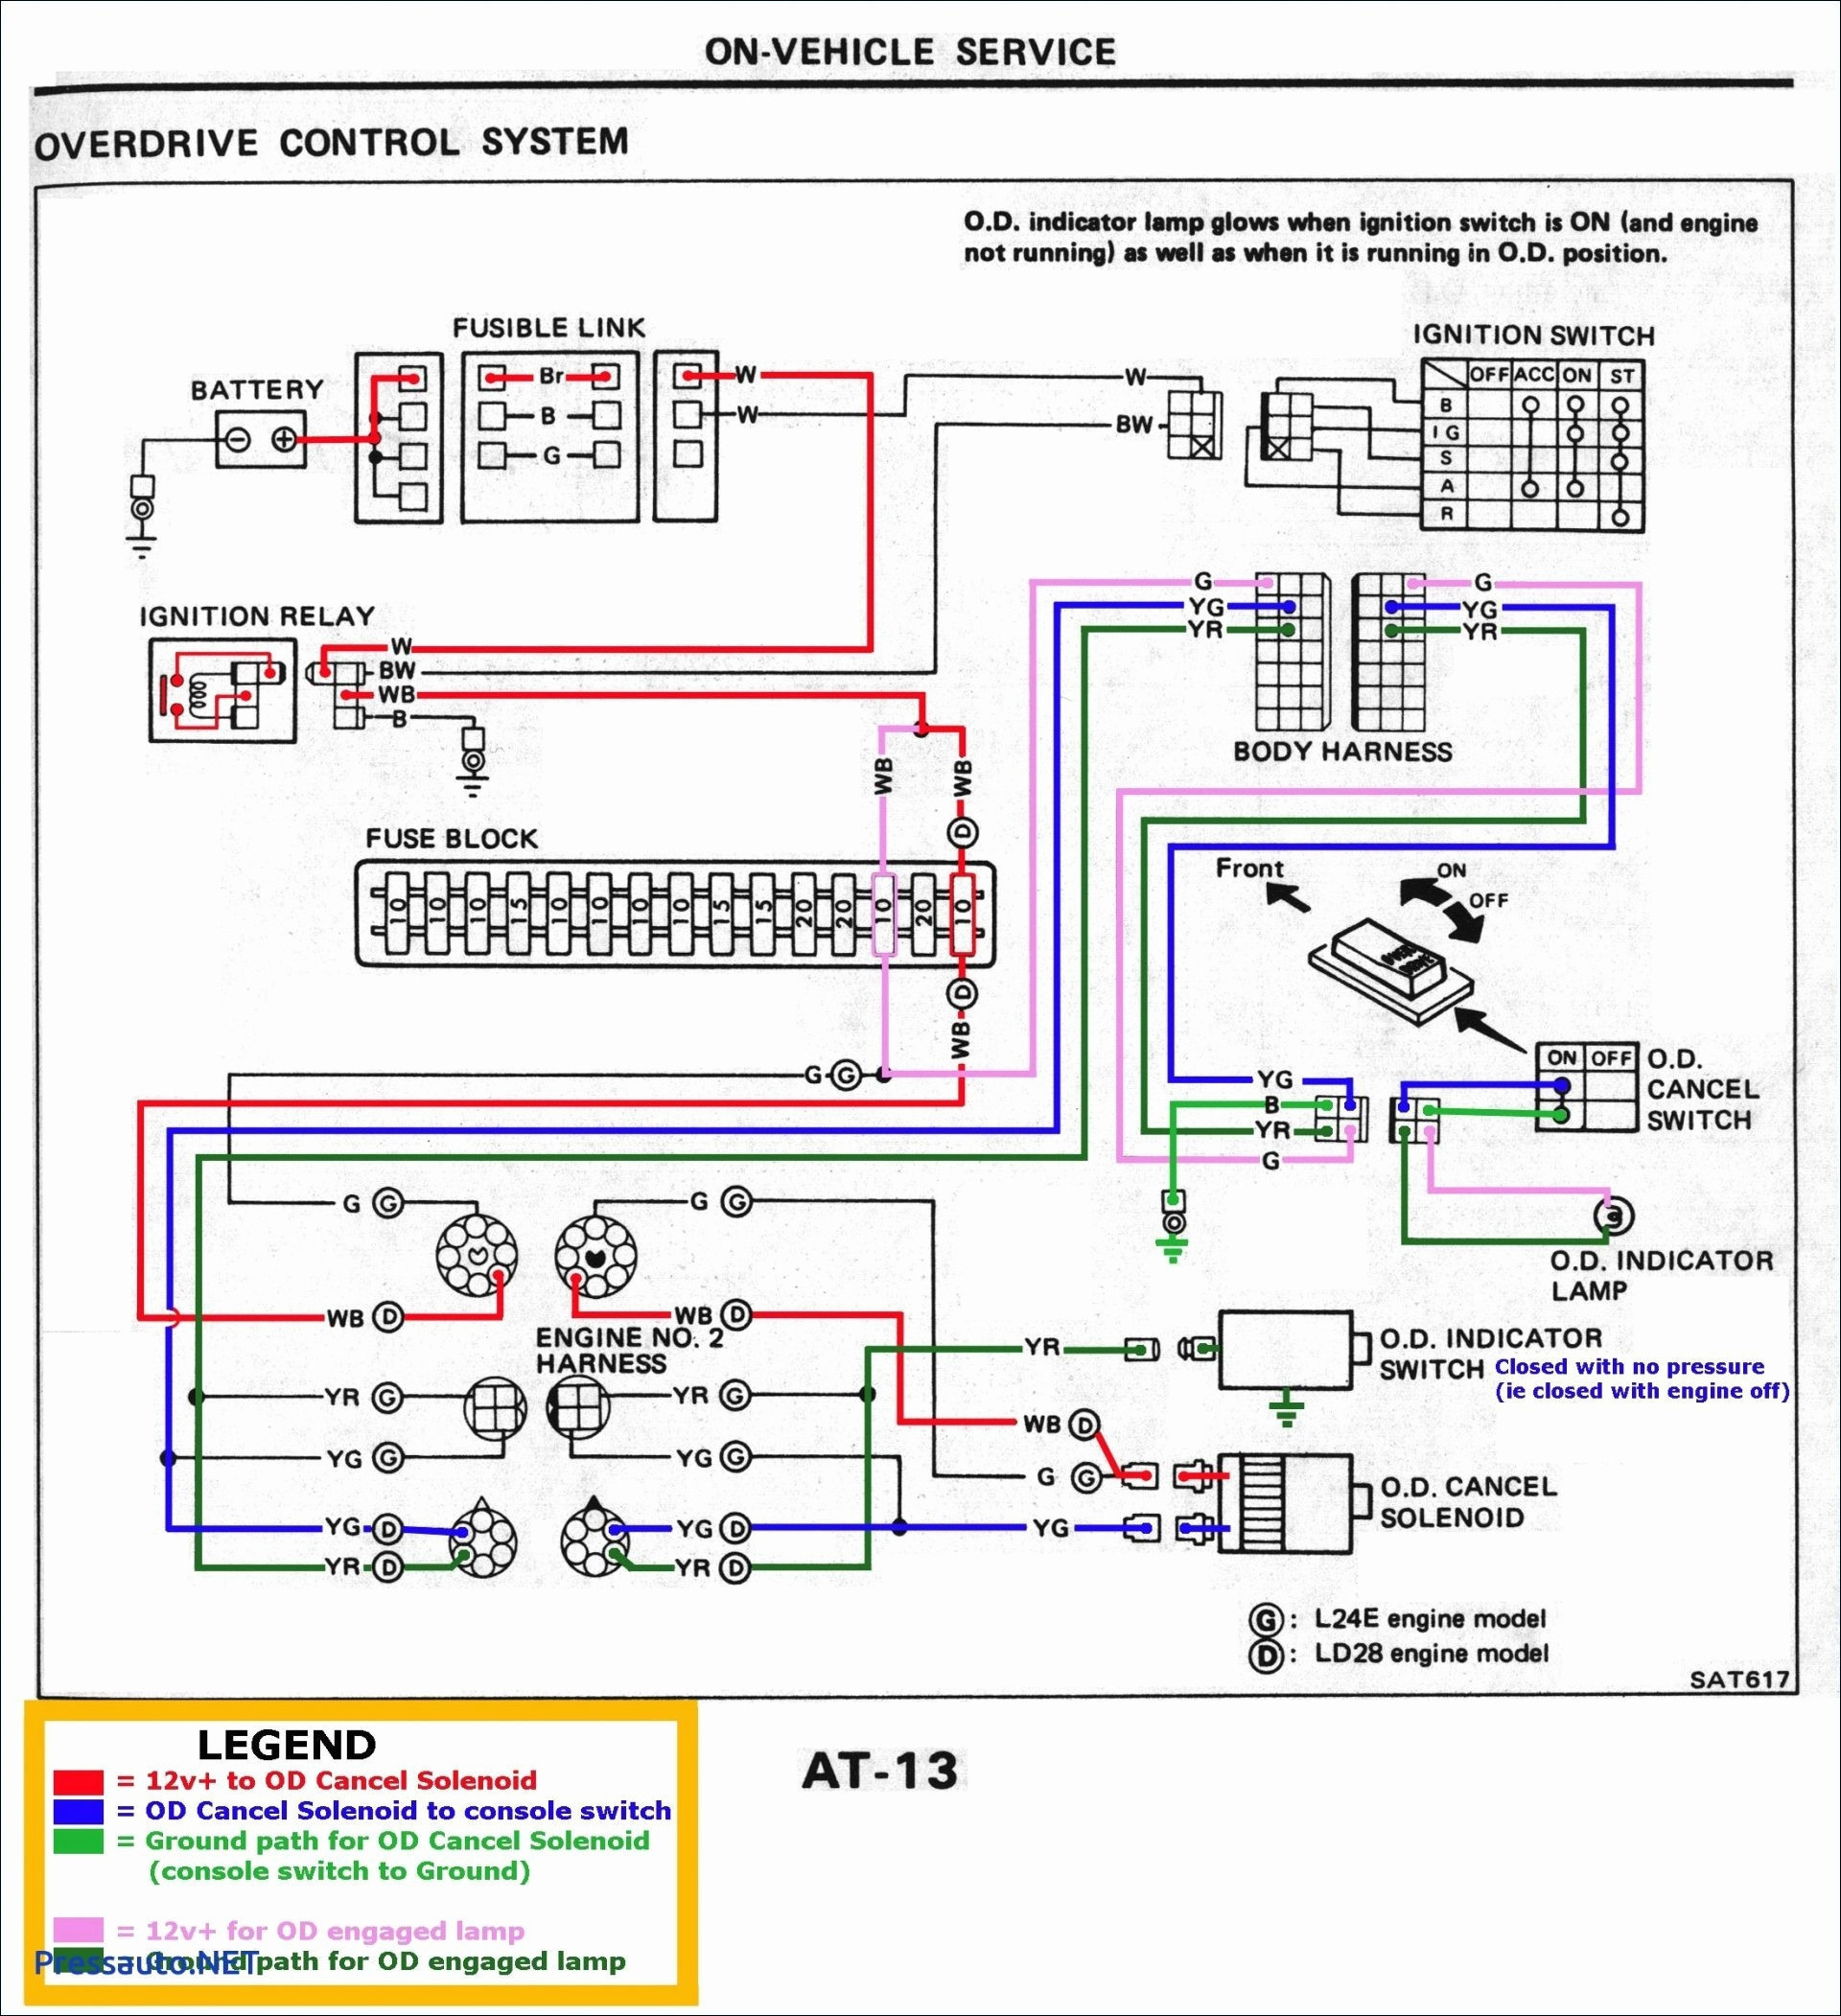 timer relay wiring diagram gallery. Black Bedroom Furniture Sets. Home Design Ideas